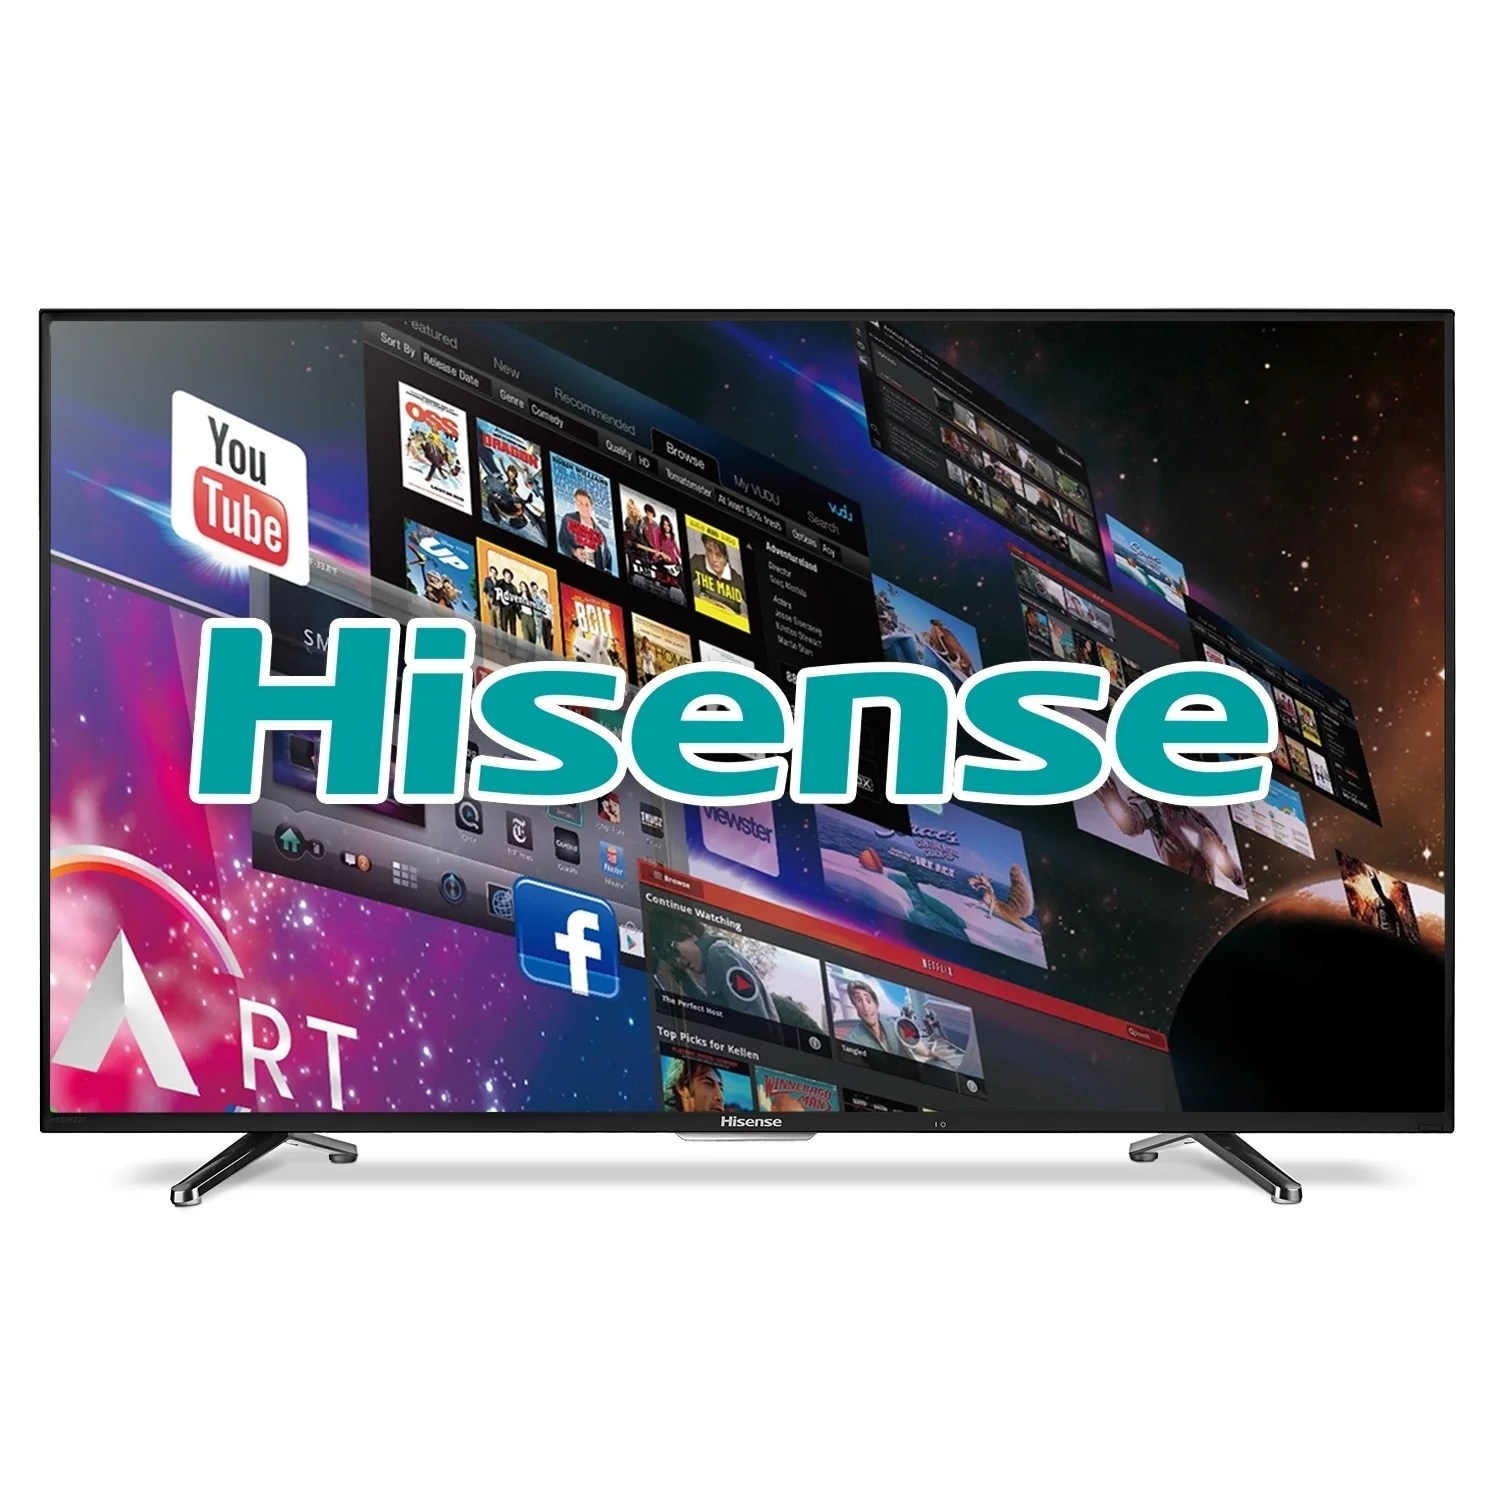 40 Inch Smart Tv Deals Hisense 40h5b 40 Inch 1080p 60hz Smart Wi Fi Led Hdtv Refurbished As Is Item